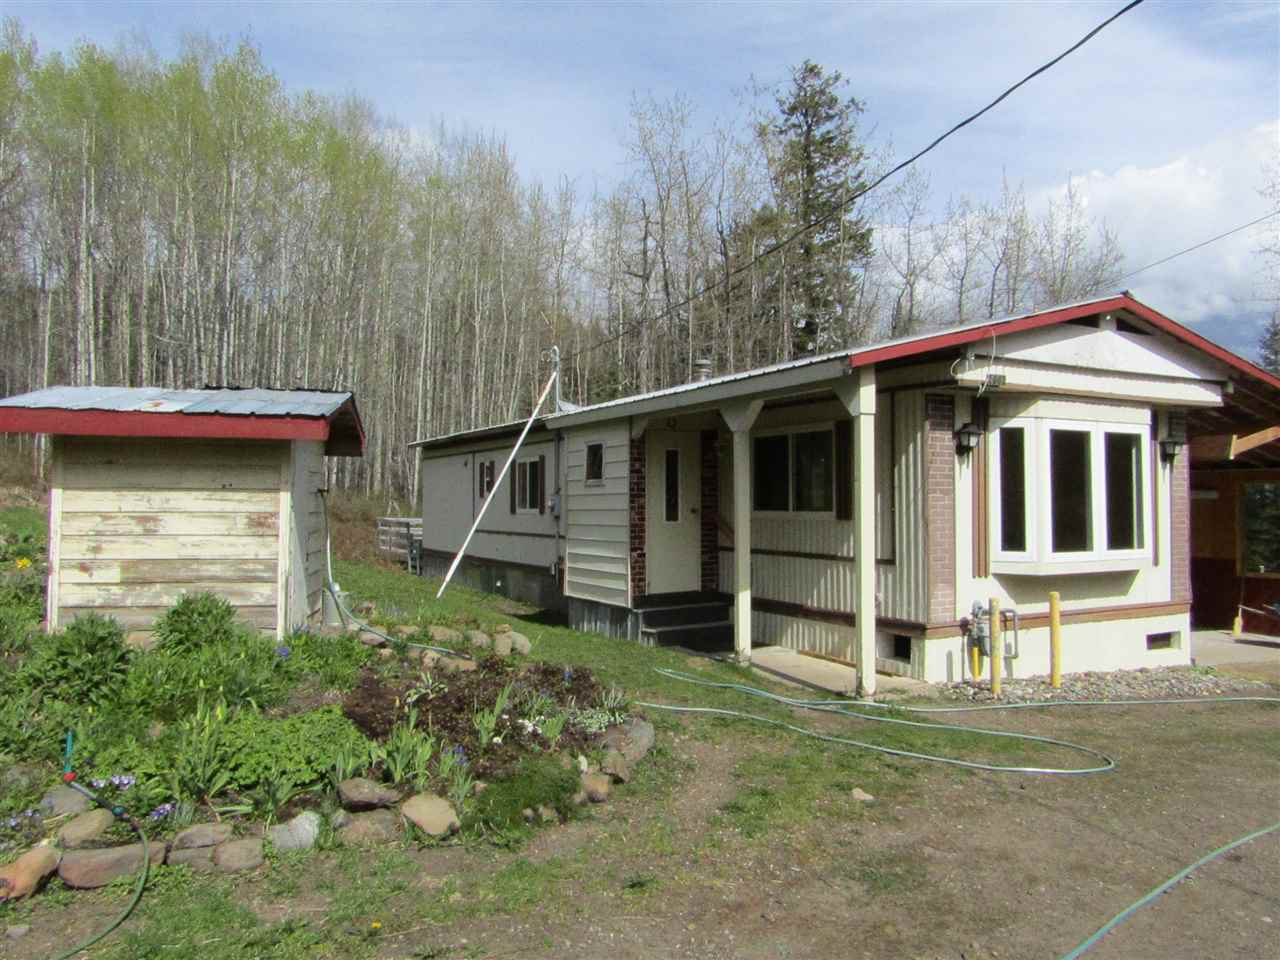 Main Photo: 2662 ROSE Drive in Williams Lake: Williams Lake - Rural East Manufactured Home for sale (Williams Lake (Zone 27))  : MLS®# R2168537